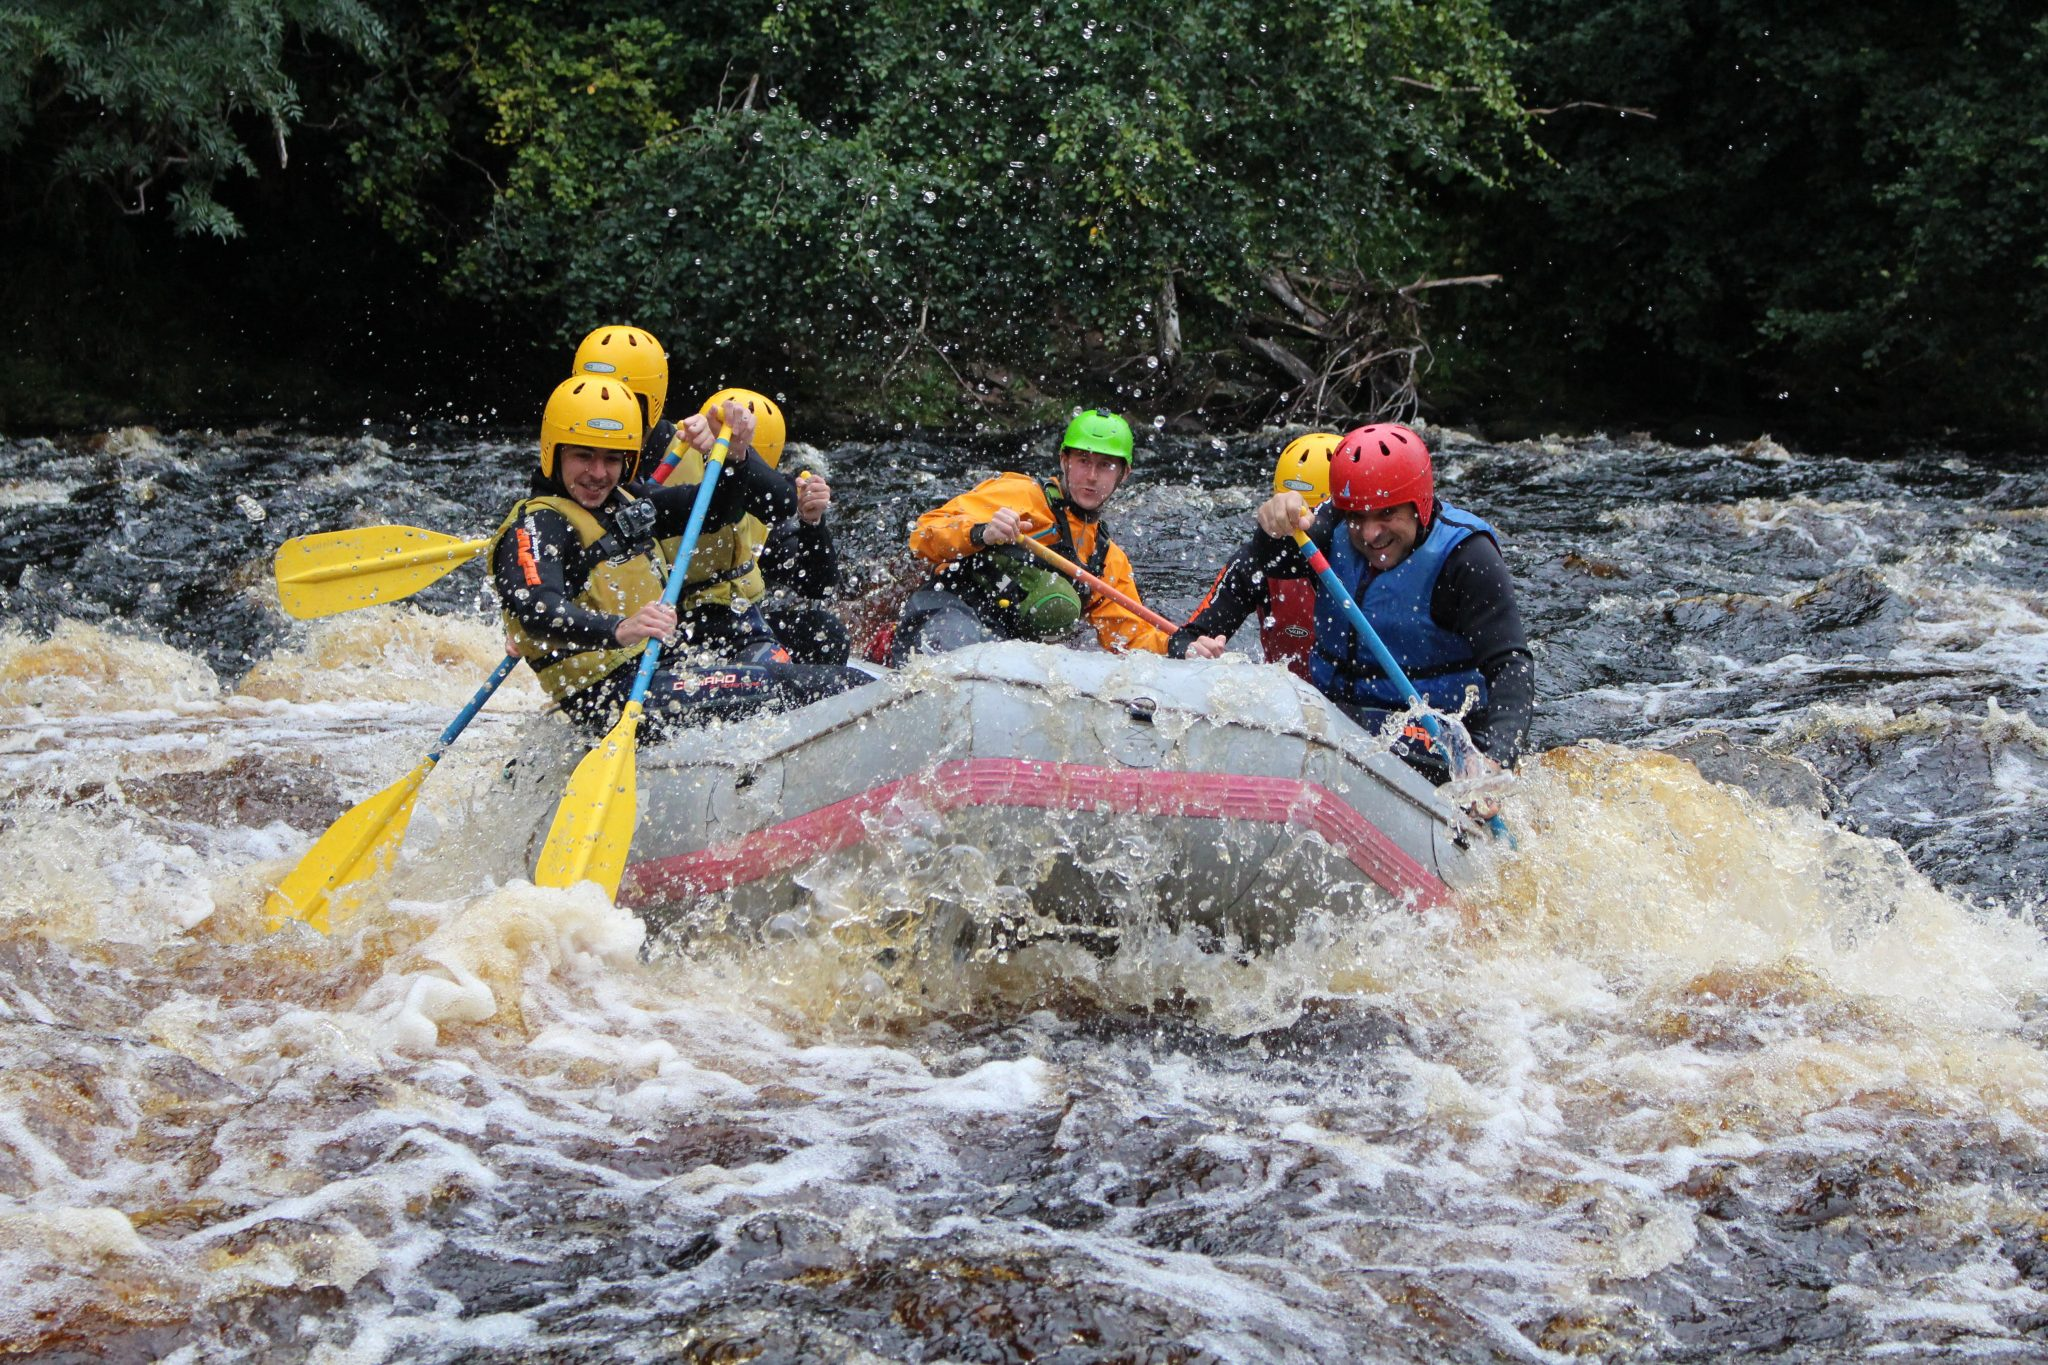 Little Haven furthermore Bar Harbor 24 also Baby Kiwi Nergi To Launch In Uk moreover White Water Rafting as well Activities With Conkers. on activities for autumn